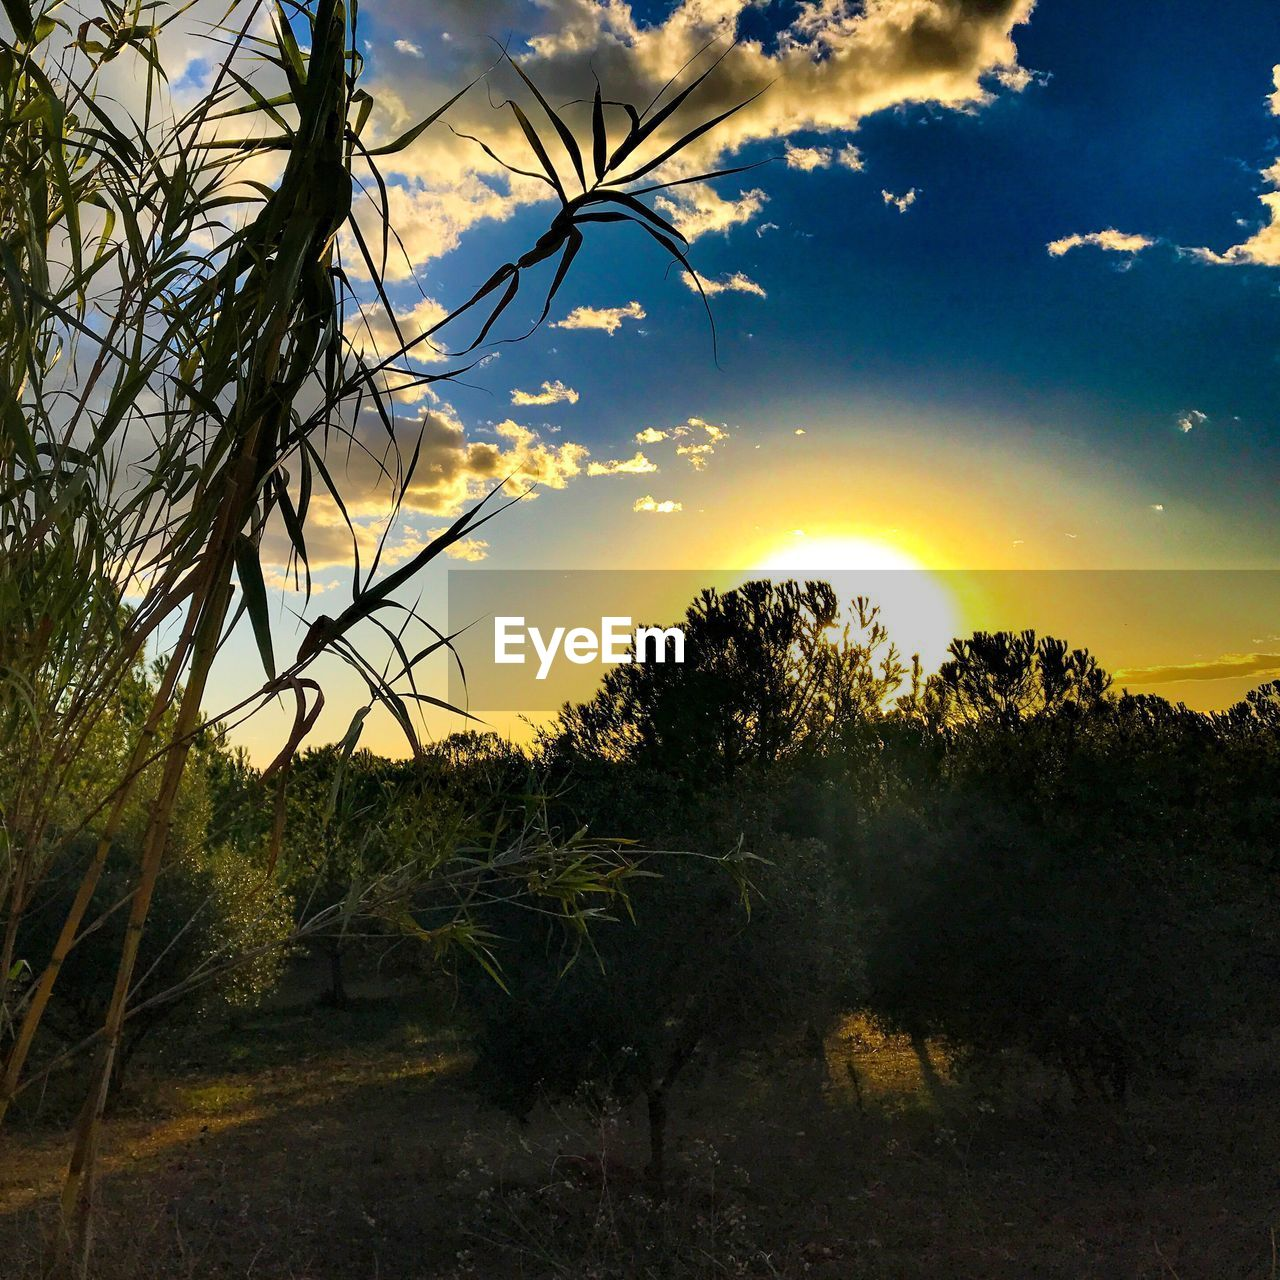 tree, growth, nature, beauty in nature, tranquility, tranquil scene, no people, sky, scenics, outdoors, landscape, plant, sunset, day